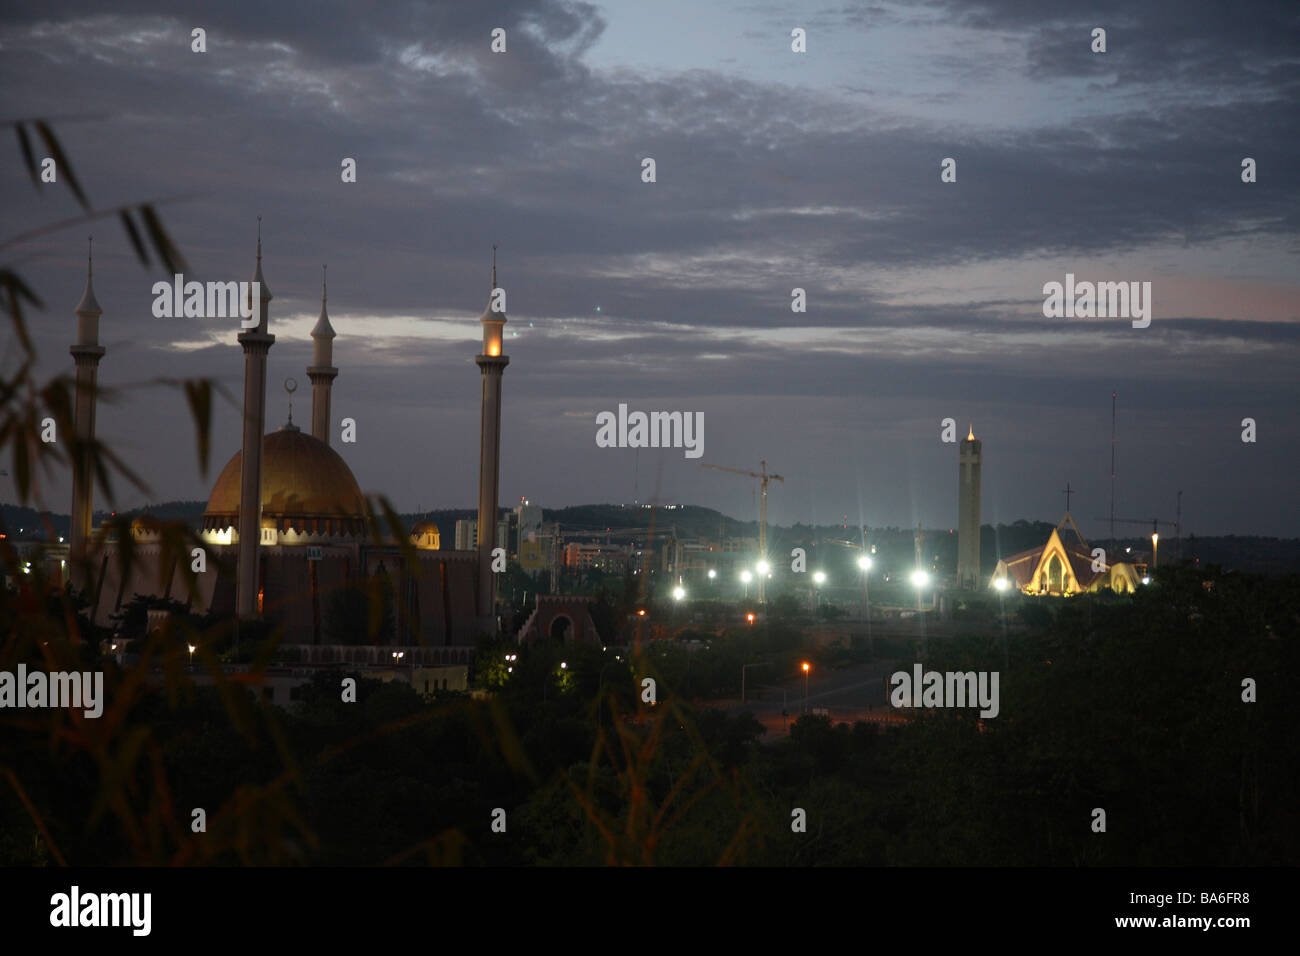 The grand Mosque and the main Church of Abuja, Capital of Nigeria by night. - Stock Image